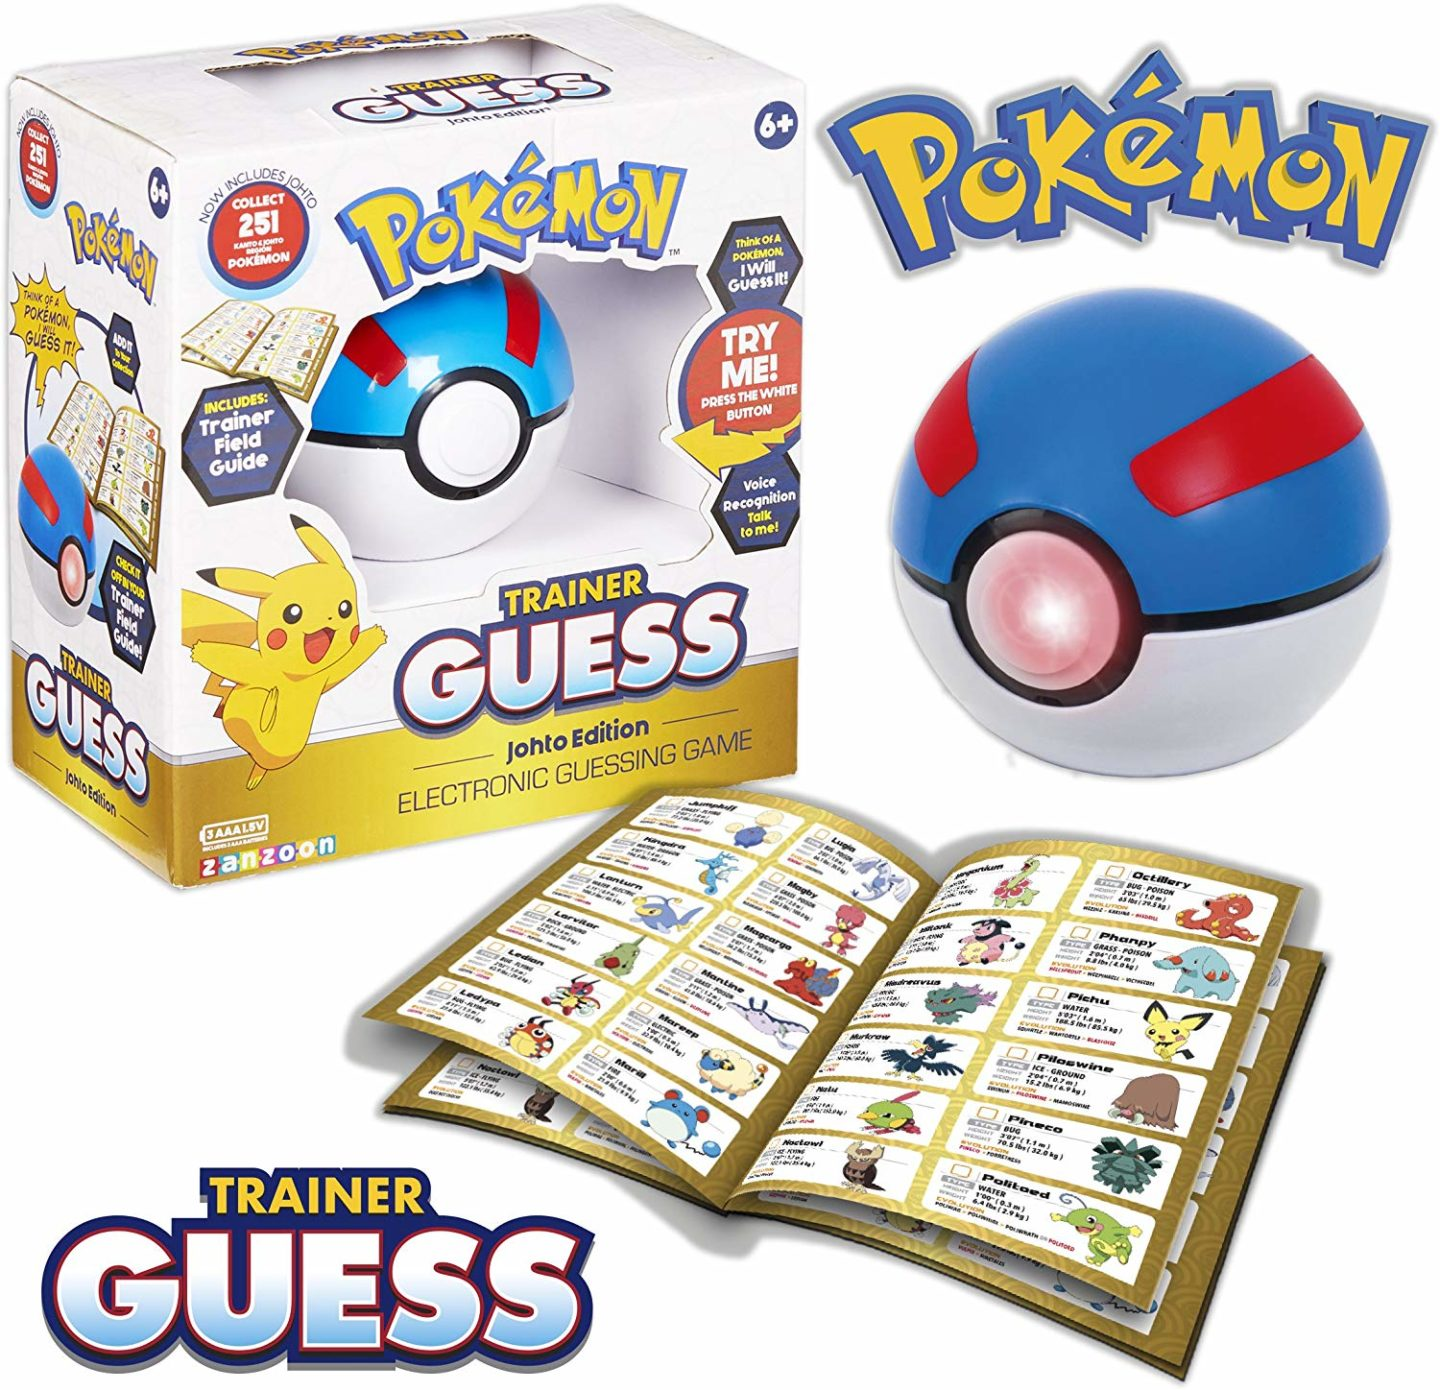 10 Pokemon gifts for kids you can buy on Amazon. Pokemon Trainer guess game.